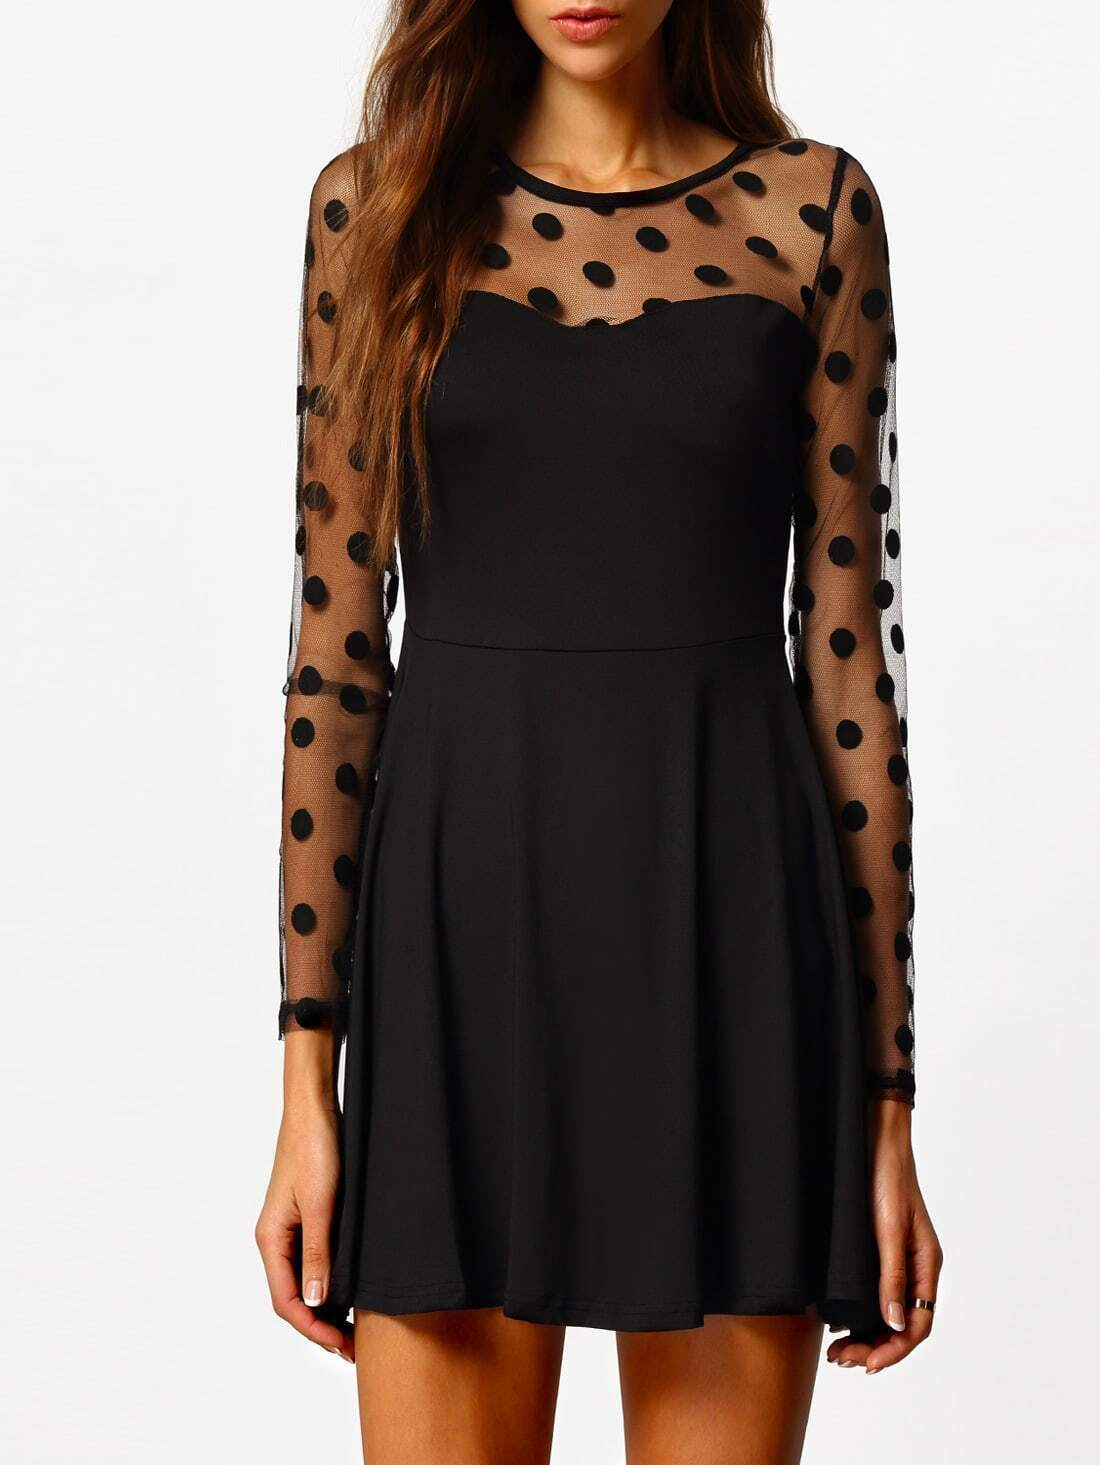 Black Long Sleeve Polka Dot Pleated Dress